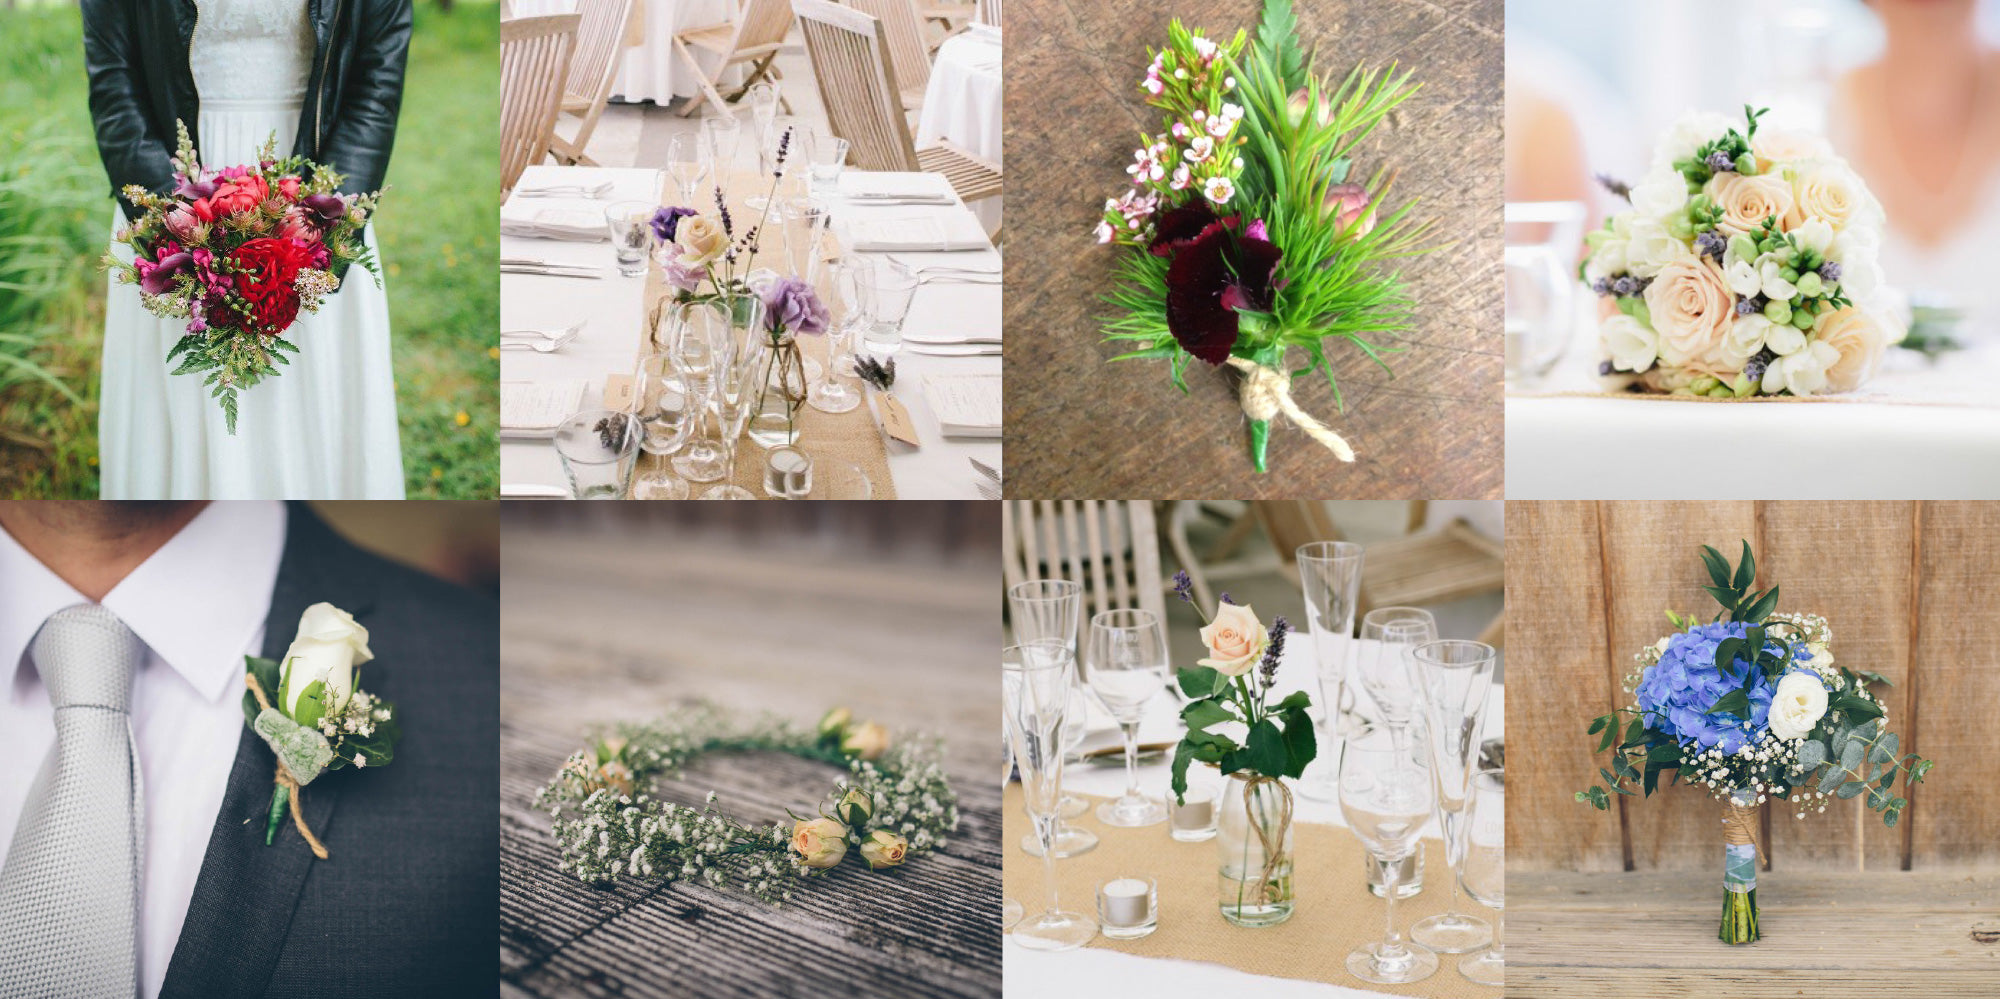 Juliette Florist Weddings